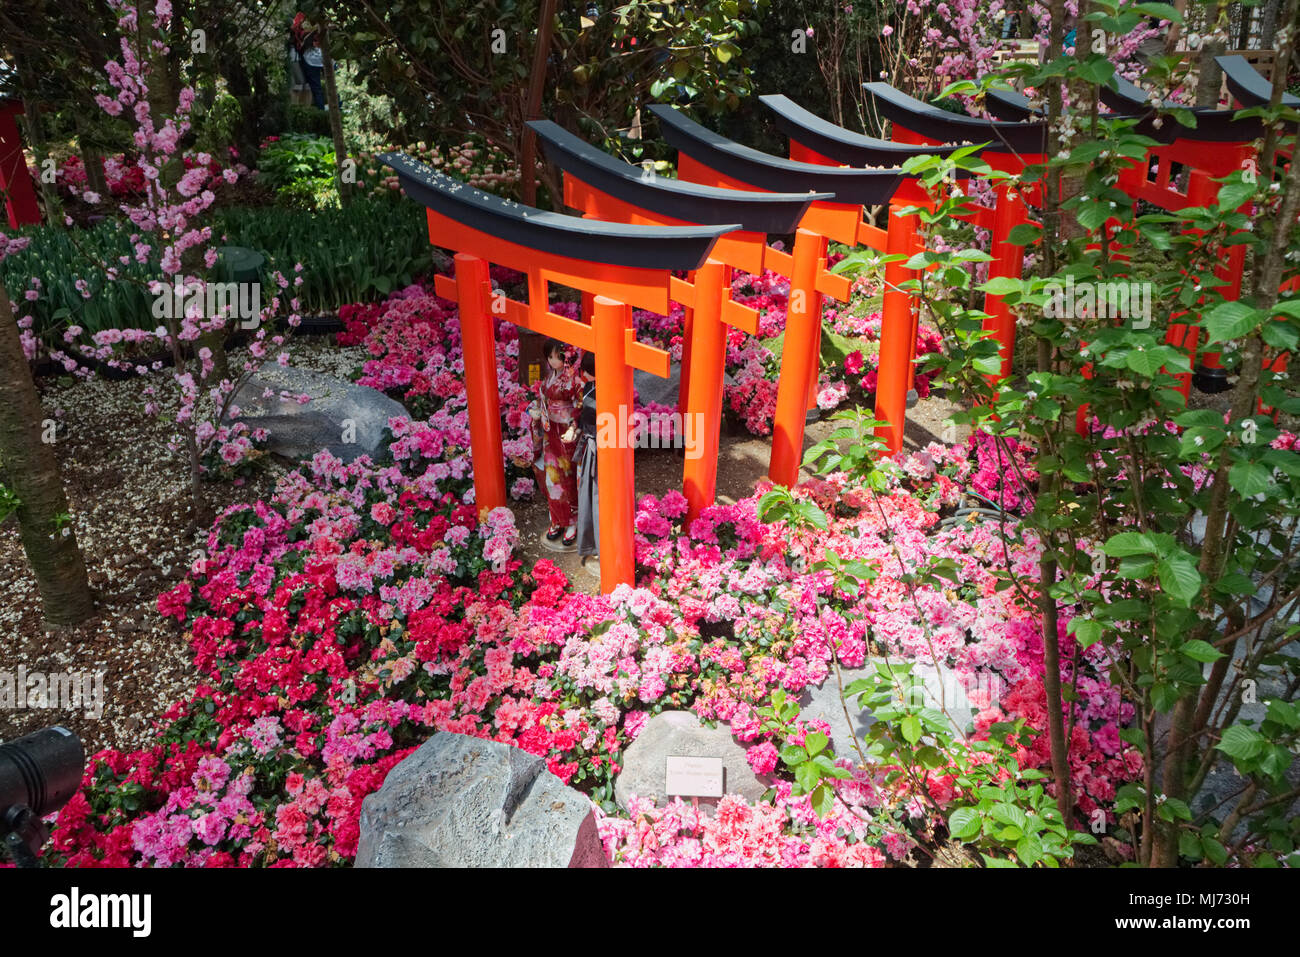 Singapore / Singapore - April 9 2018: Japanese figurines are laid out in the Flower Dome in the Gardens by the Bay of Singapore as part of a Sakura (c - Stock Image